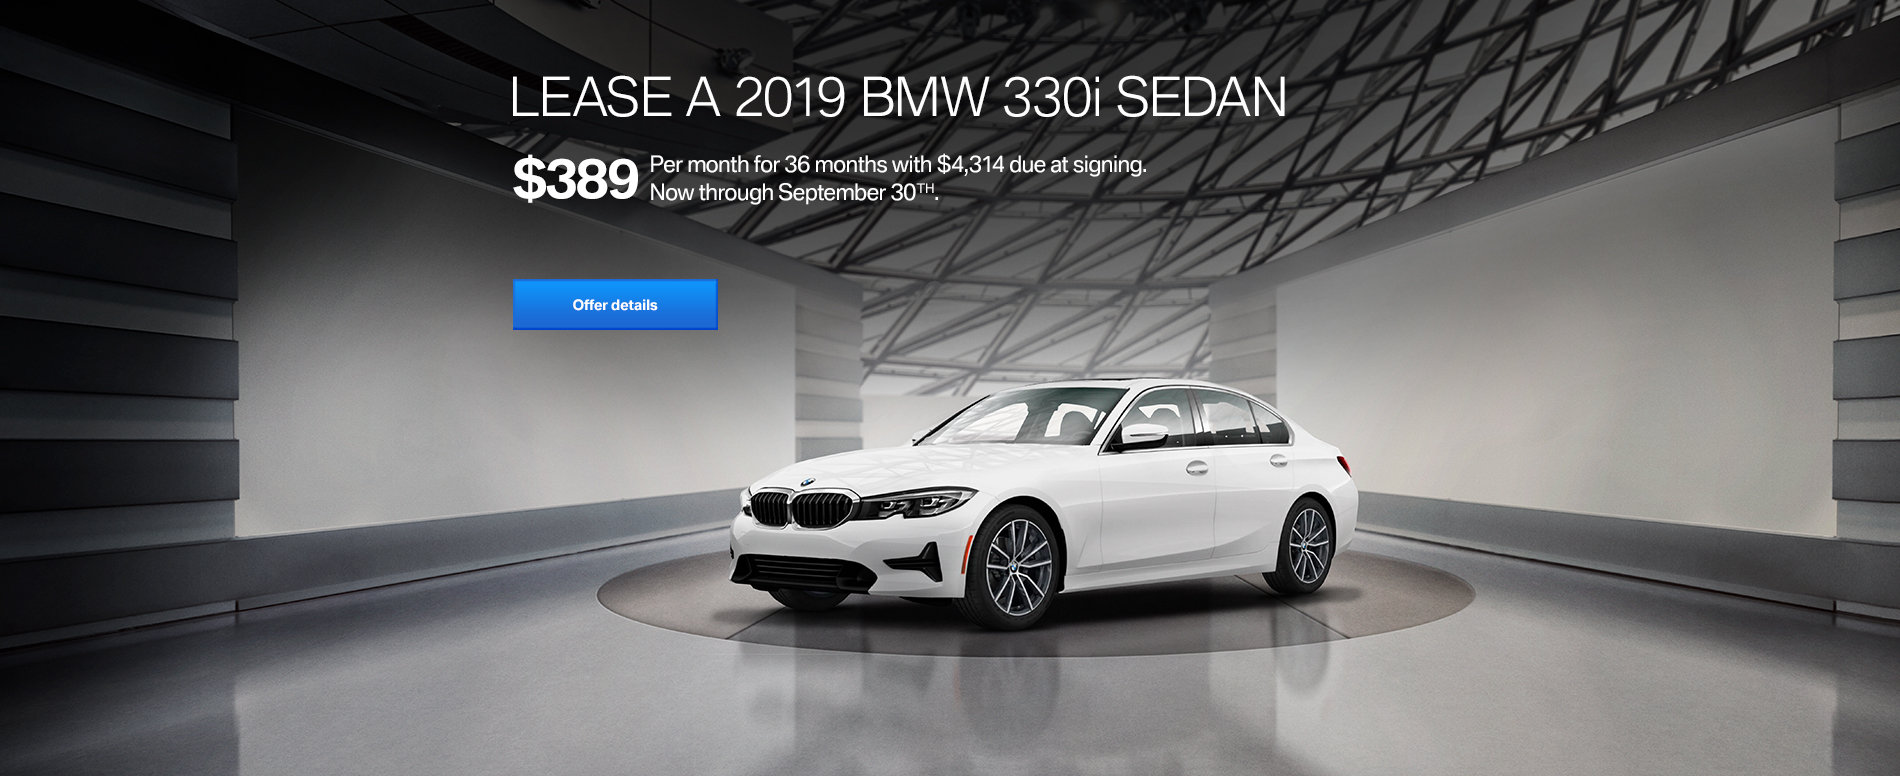 New & Used BMW Car Dealer - Chino Hills, Corona, Upland and